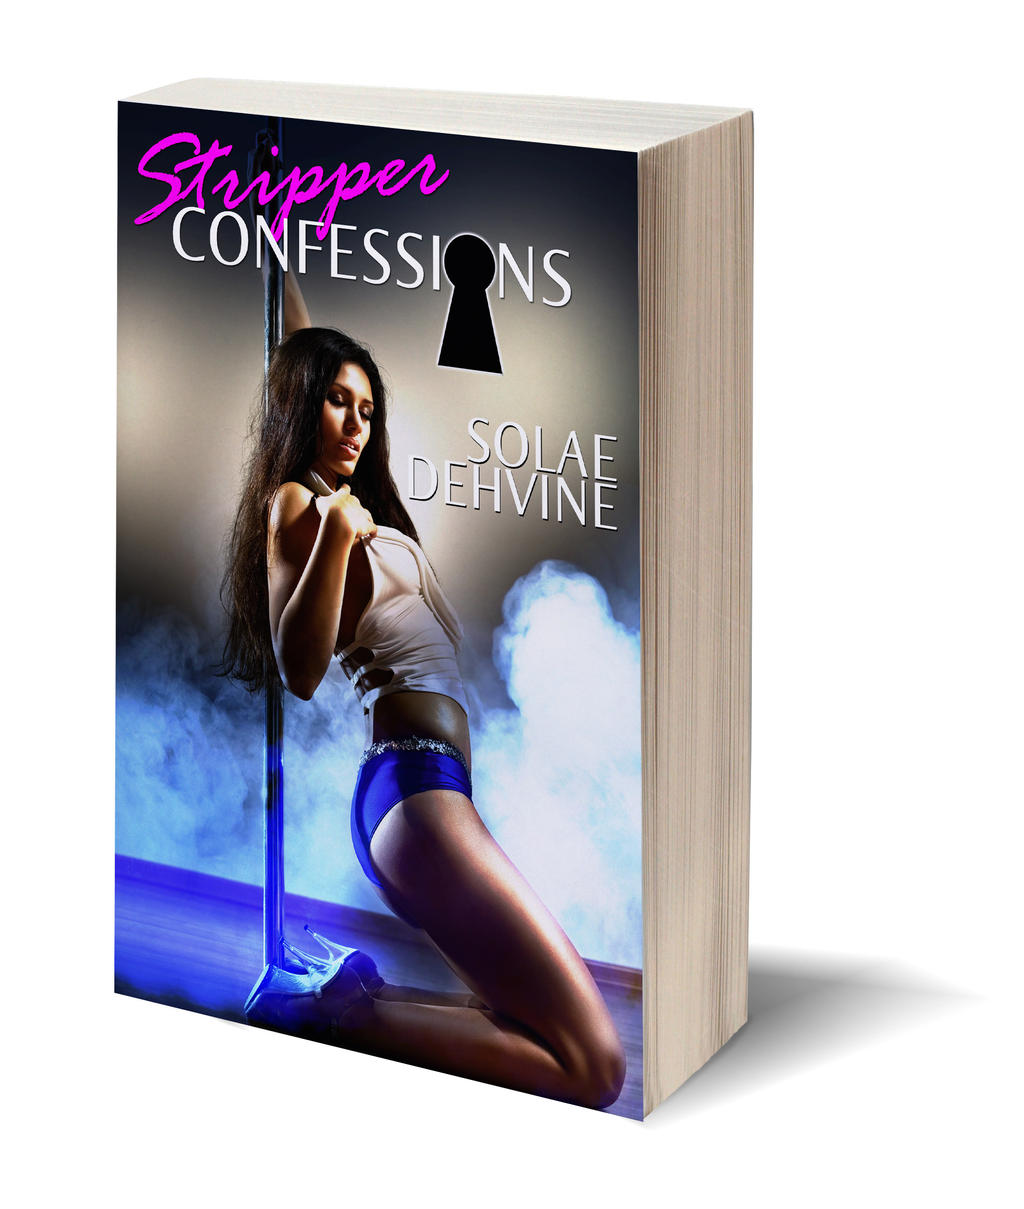 Book Cover Design Deviantart : Strippers confessions d image of book cover by